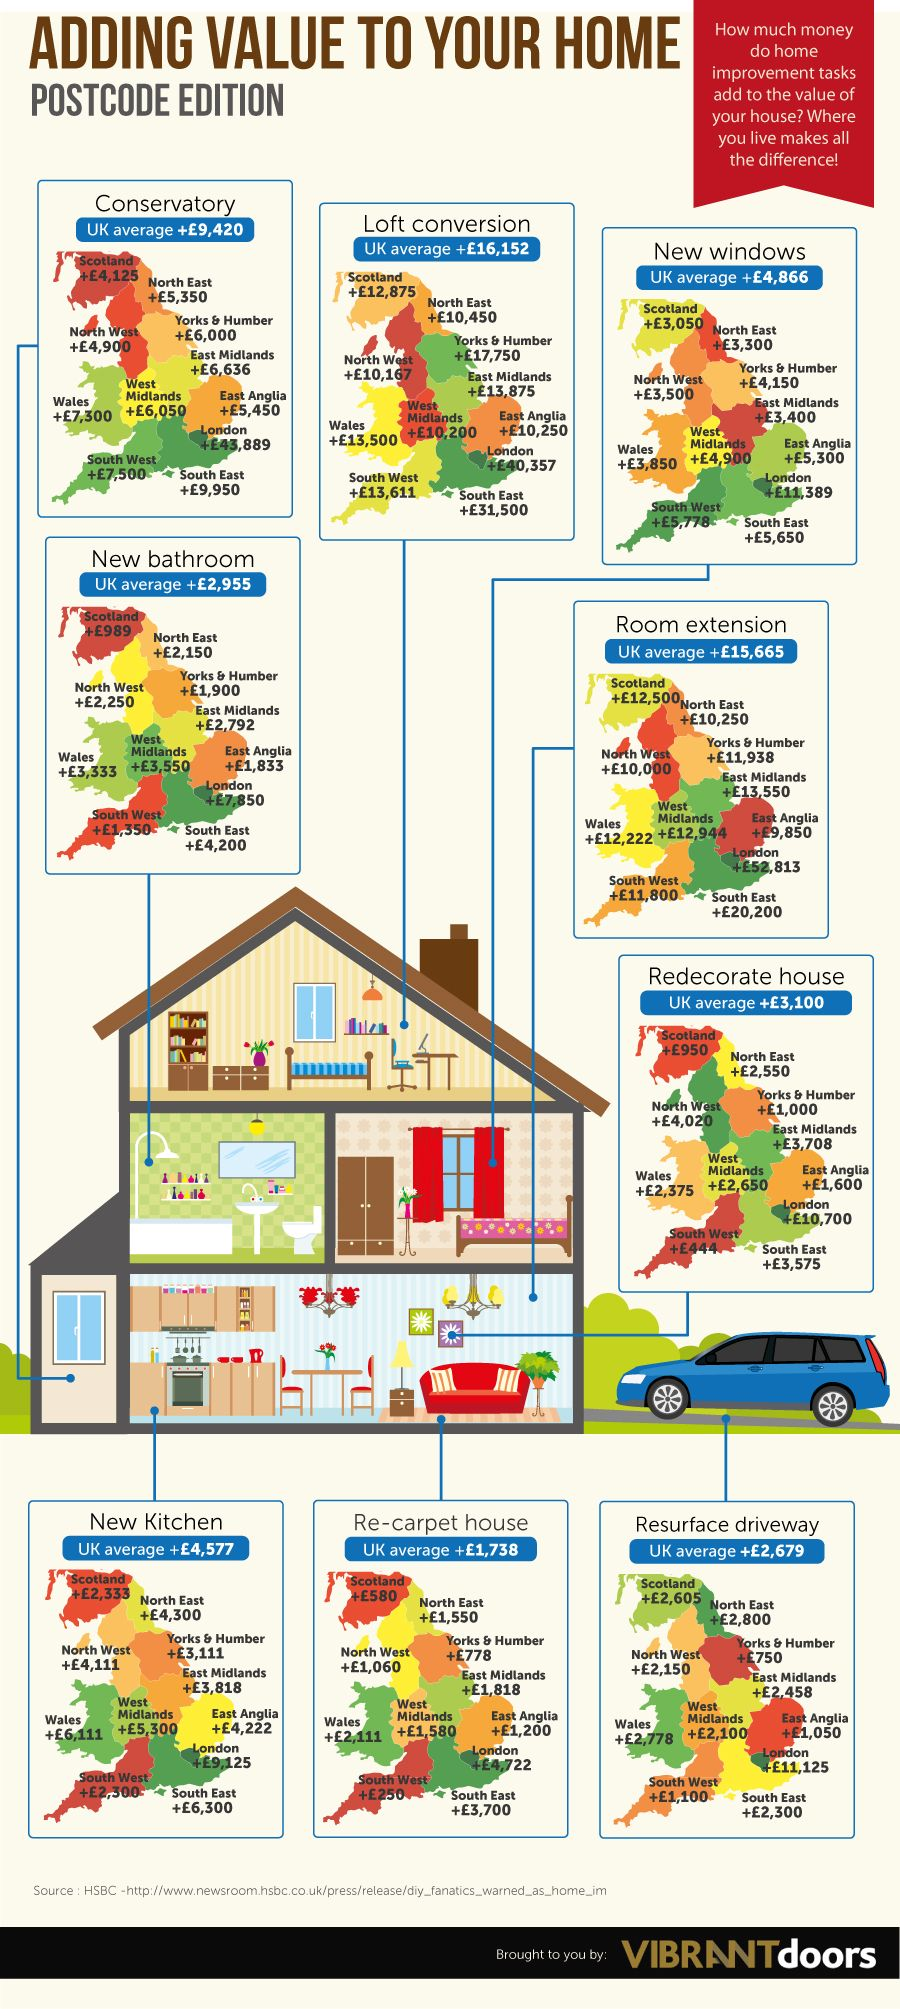 Ever Wondered Which Home Improvement Adds The Most Value